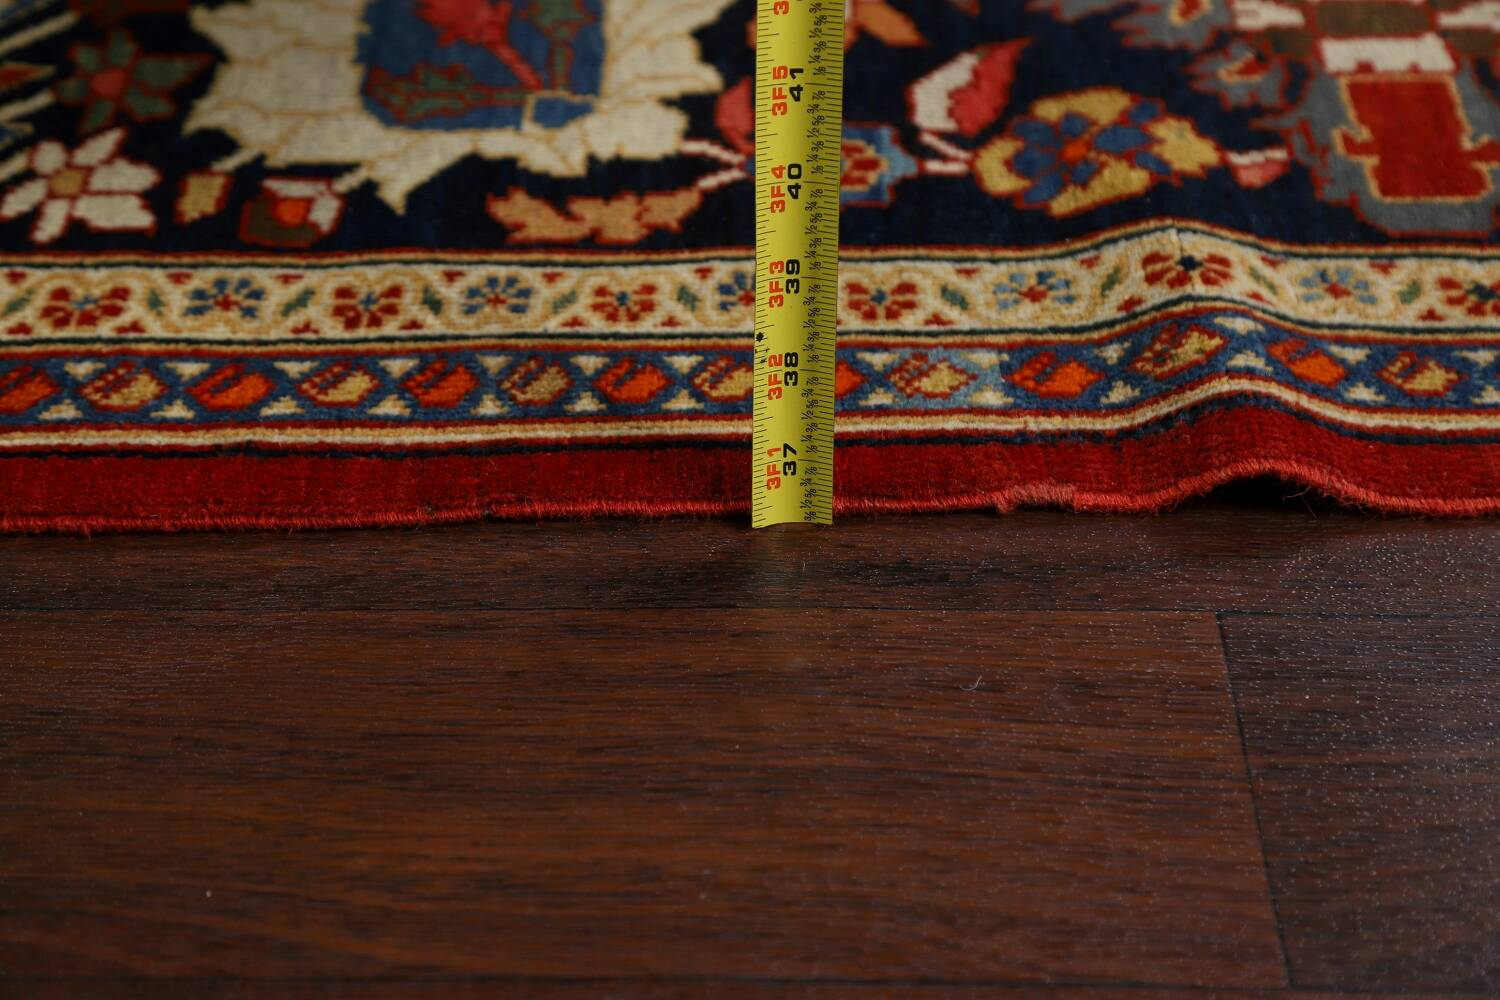 Pre-1900 Antique Sultanabad Vegetable Dye Persian Rug 11x14 image 21